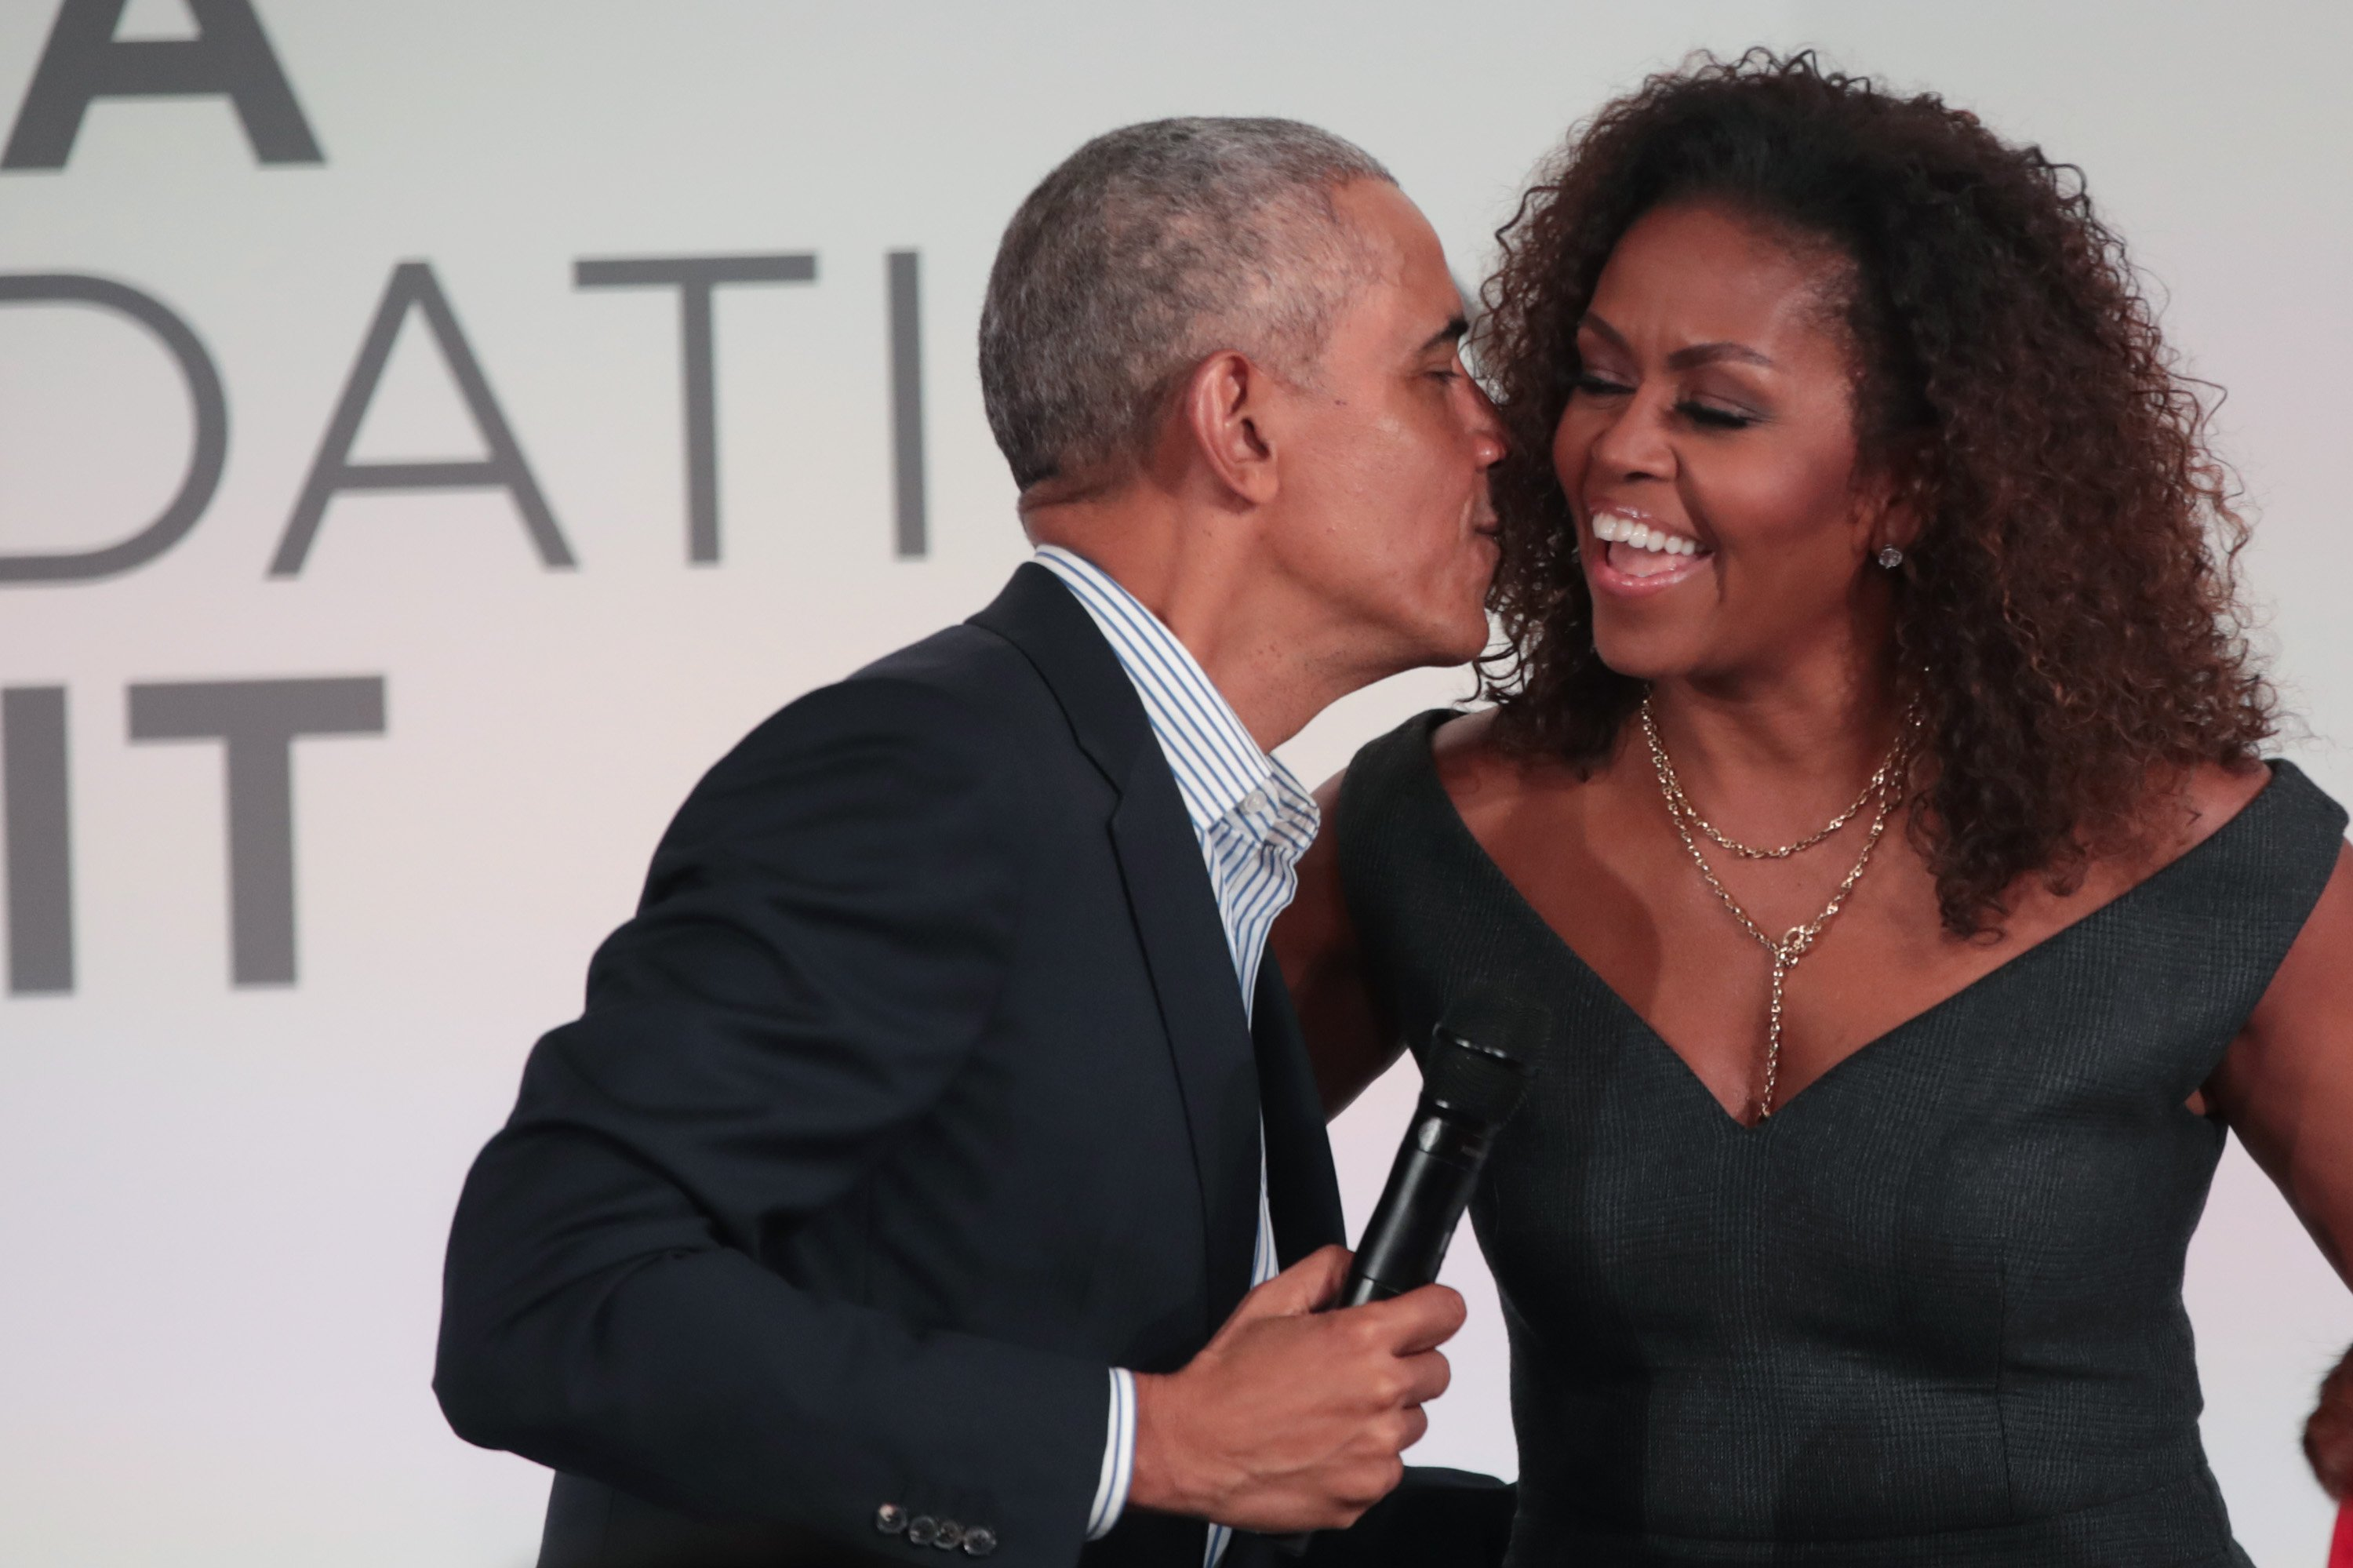 Barack Obama gives his wife Michelle a kiss as they close the Obama Foundation Summit together on the campus of the Illinois Institute of Technology on October 29, 2019. | Source: Getty Images